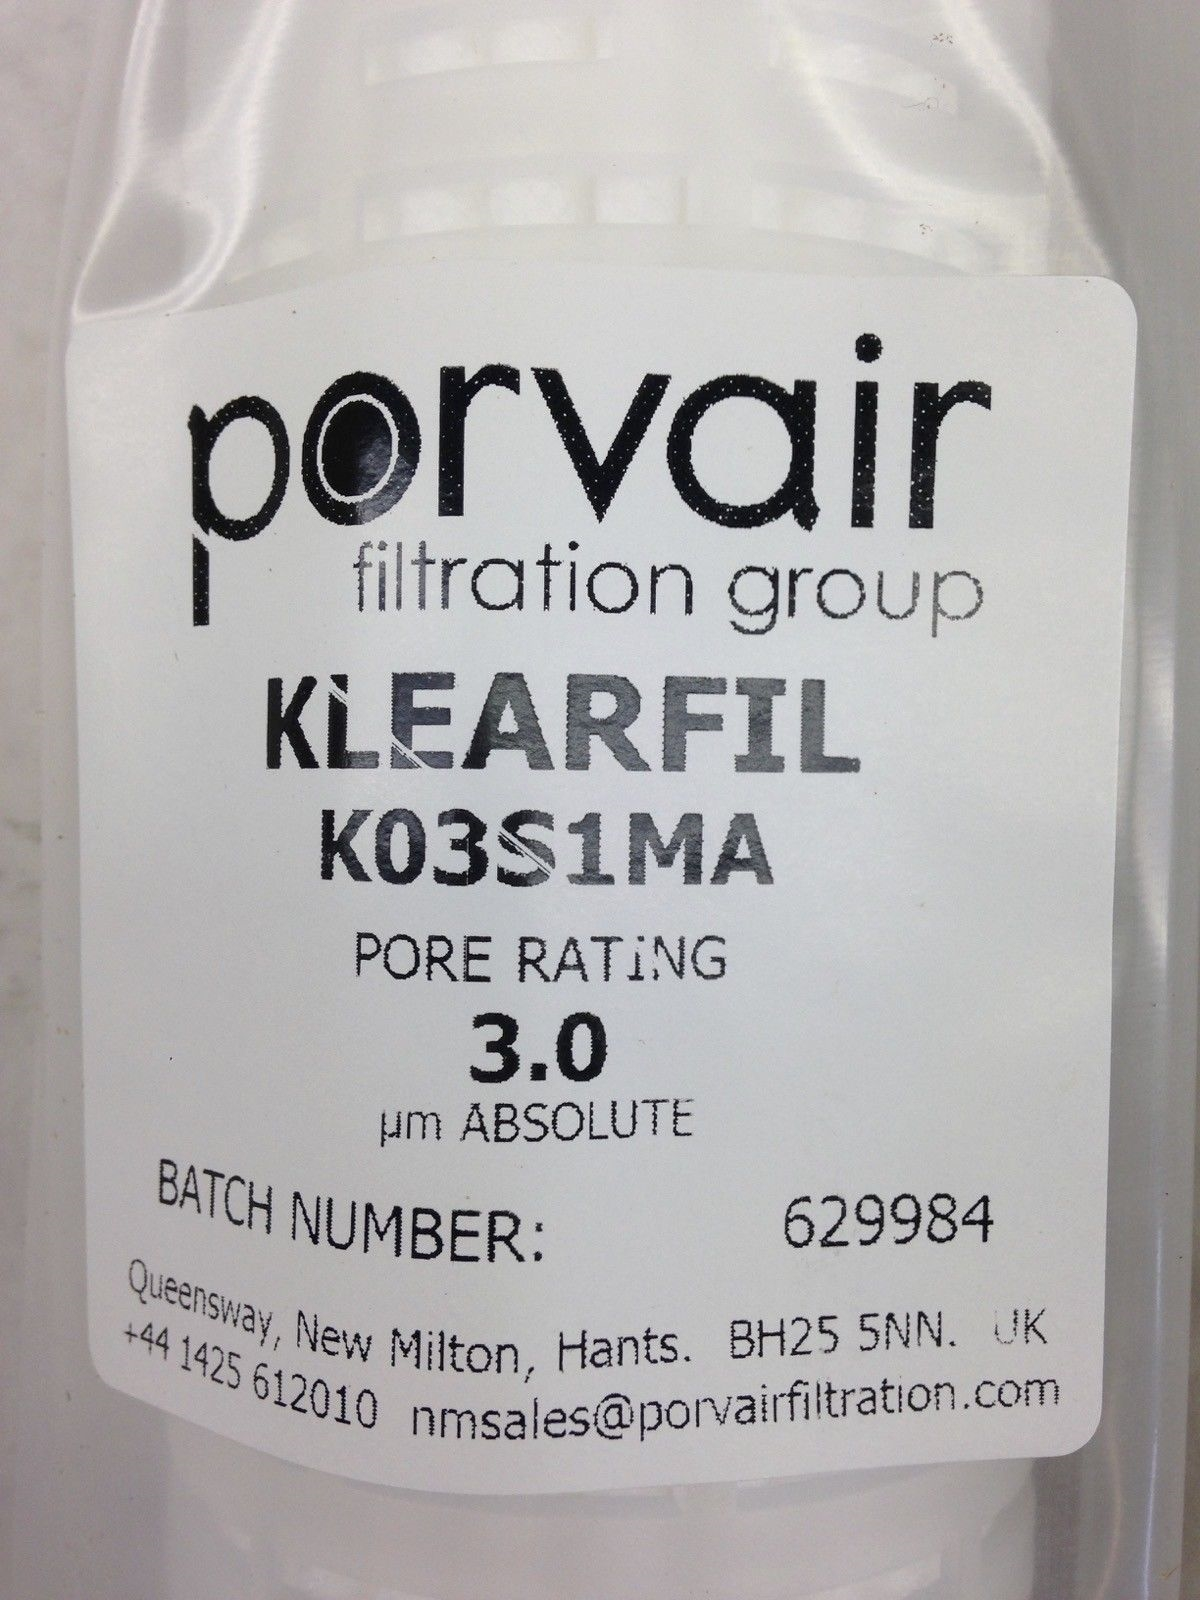 PORVAIR FILTRATION GROUP KLEARFIL KO3S1MA (B444) 2